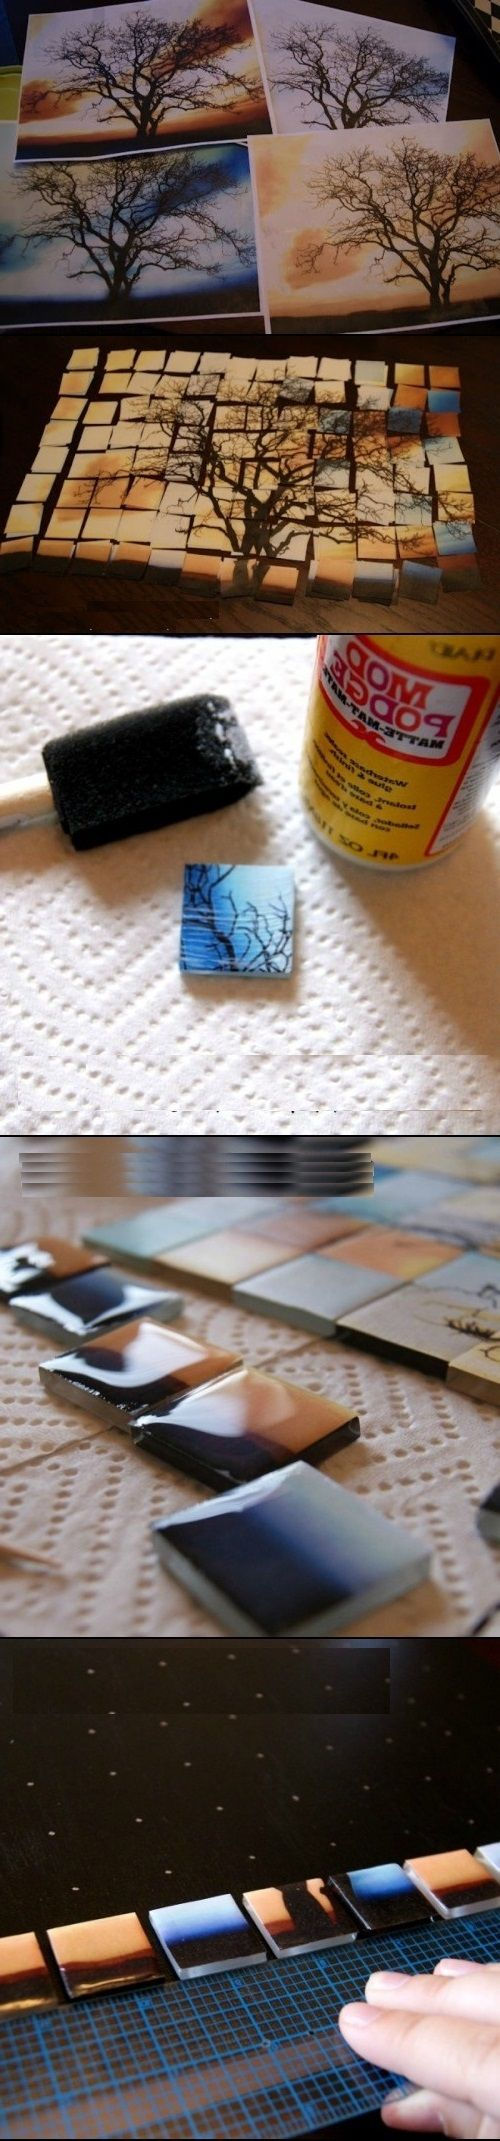 Mosaic glass tile for crafts - Find This Pin And More On Arts Crafts Mosaic Diy Glass Tile